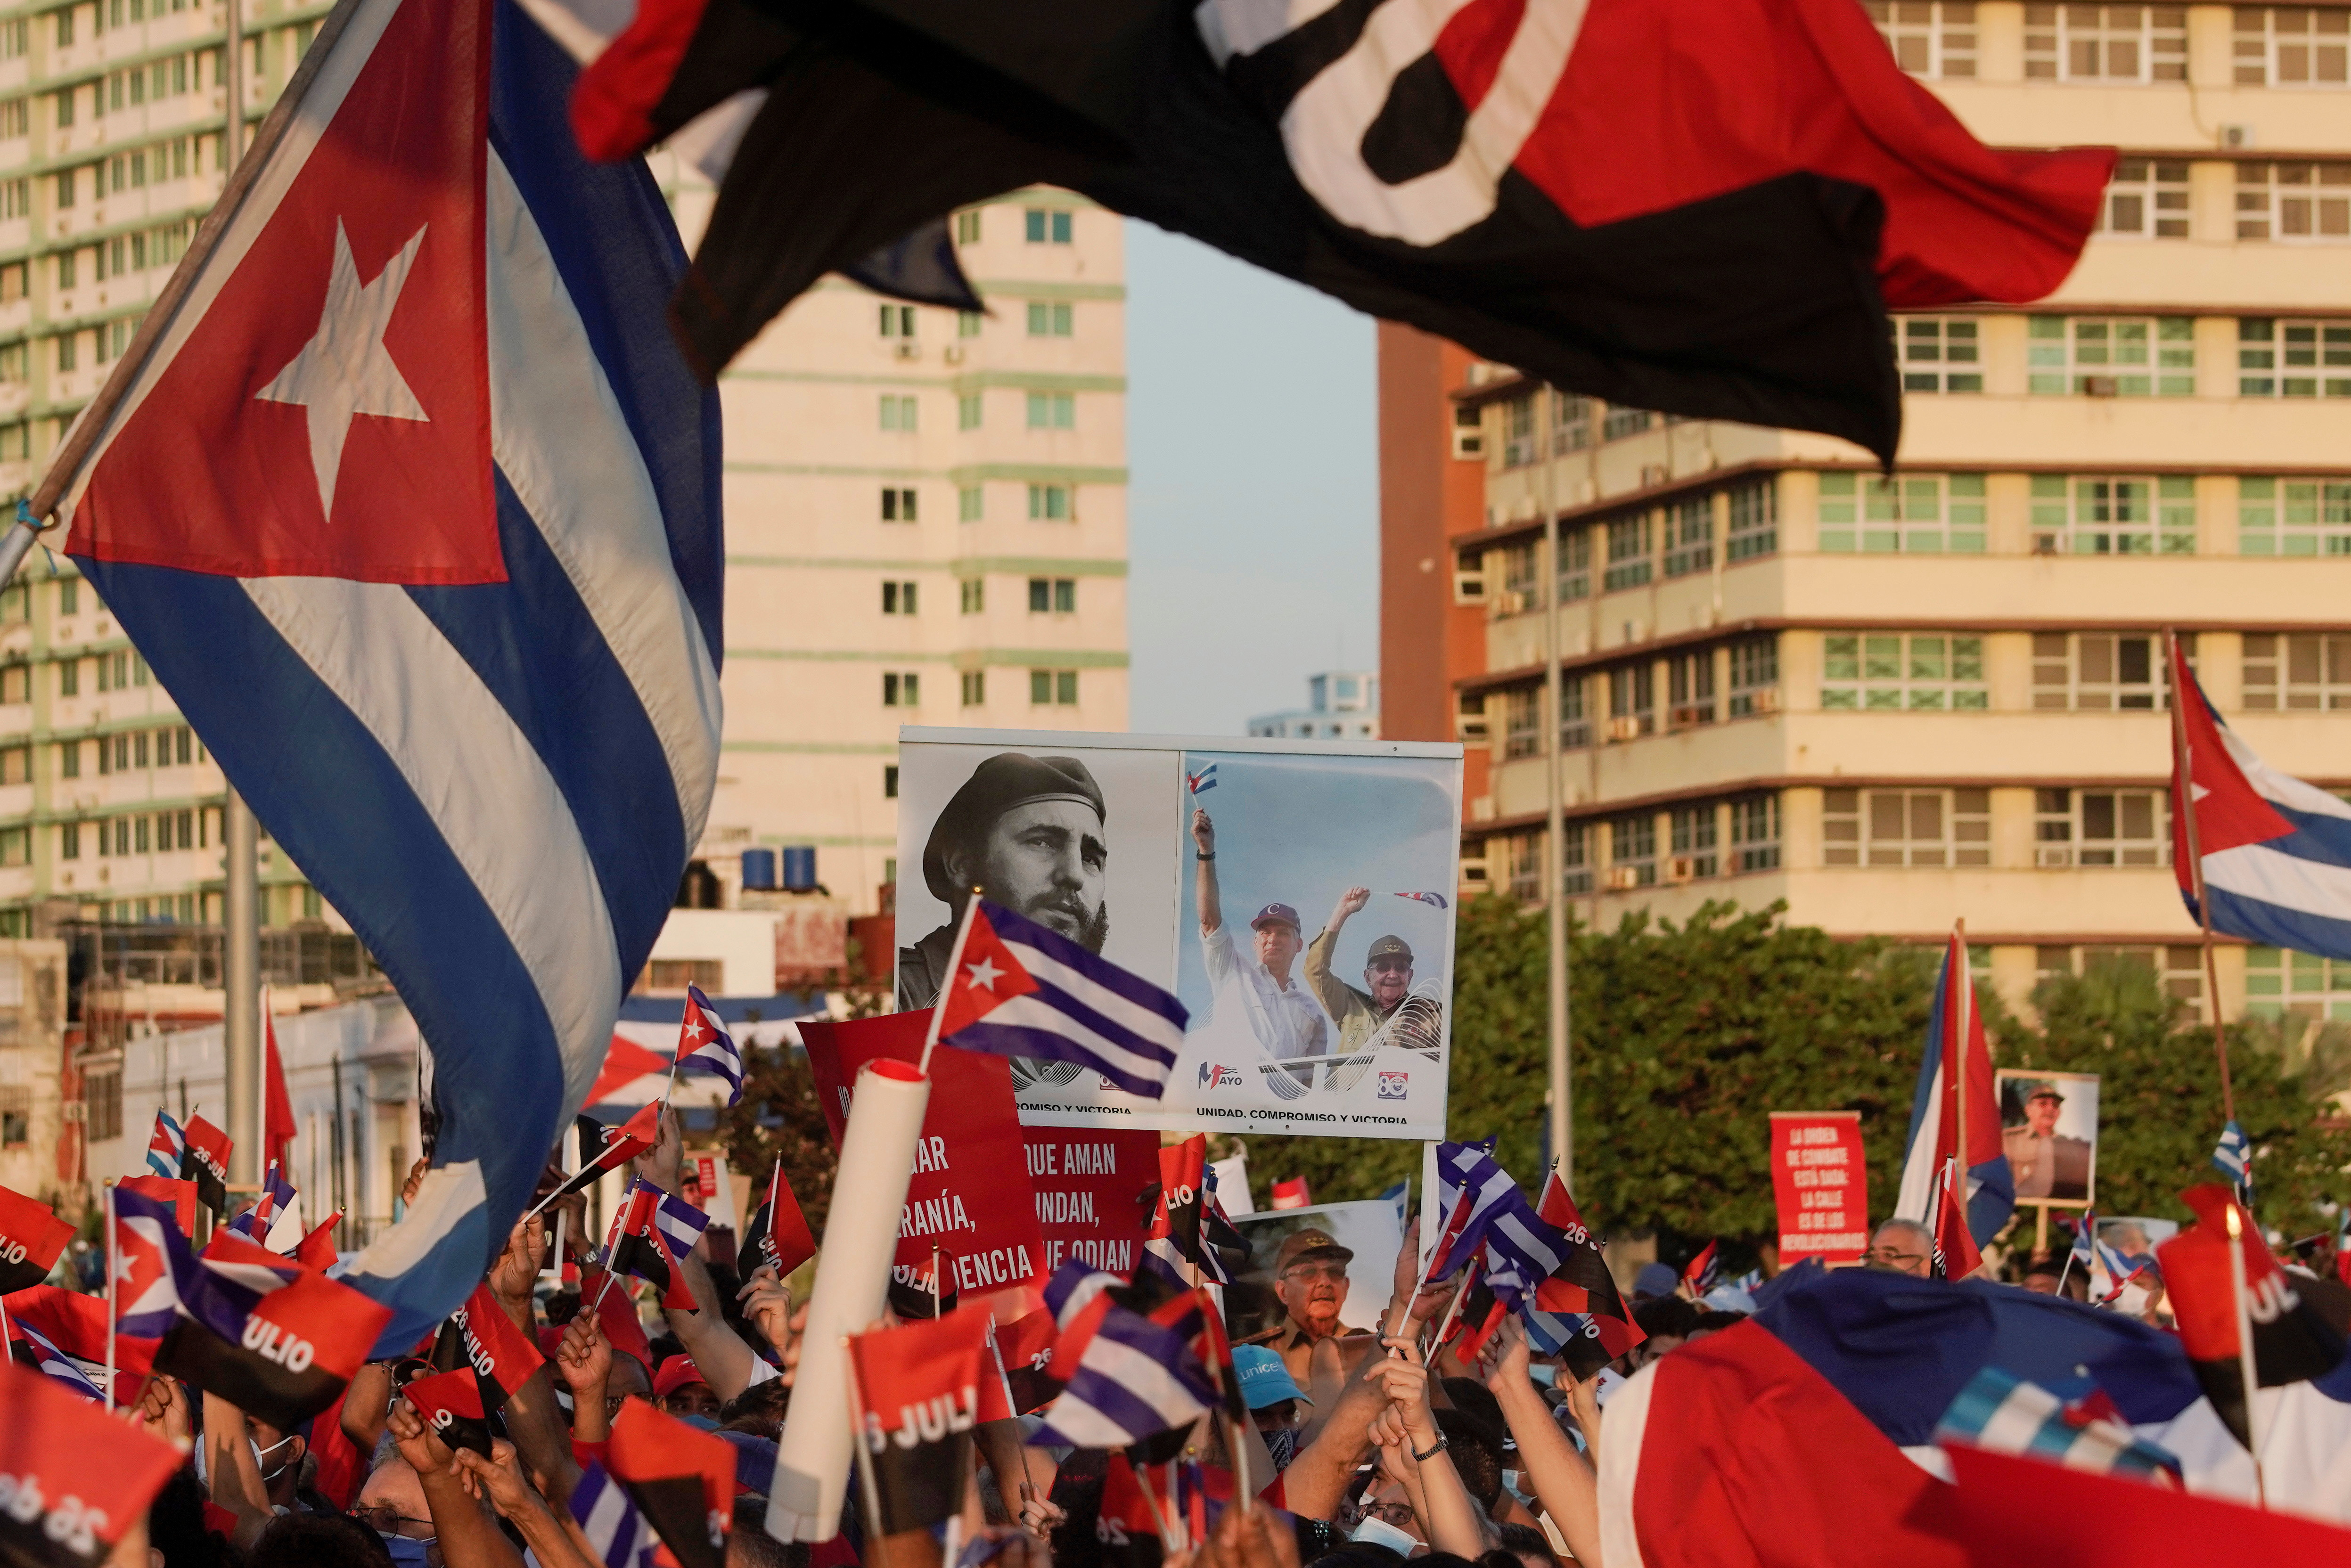 People carry a poster with photographs of Cuba's late President Fidel Castro, Cuba's President and First Secretary of the Communist Party Miguel Diaz-Canel and Cuba's former President and First Secretary of the Communist Party Raul Castro during a rally in Havana, Cuba, July 17, 2021. REUTERS/Alexandre Meneghini